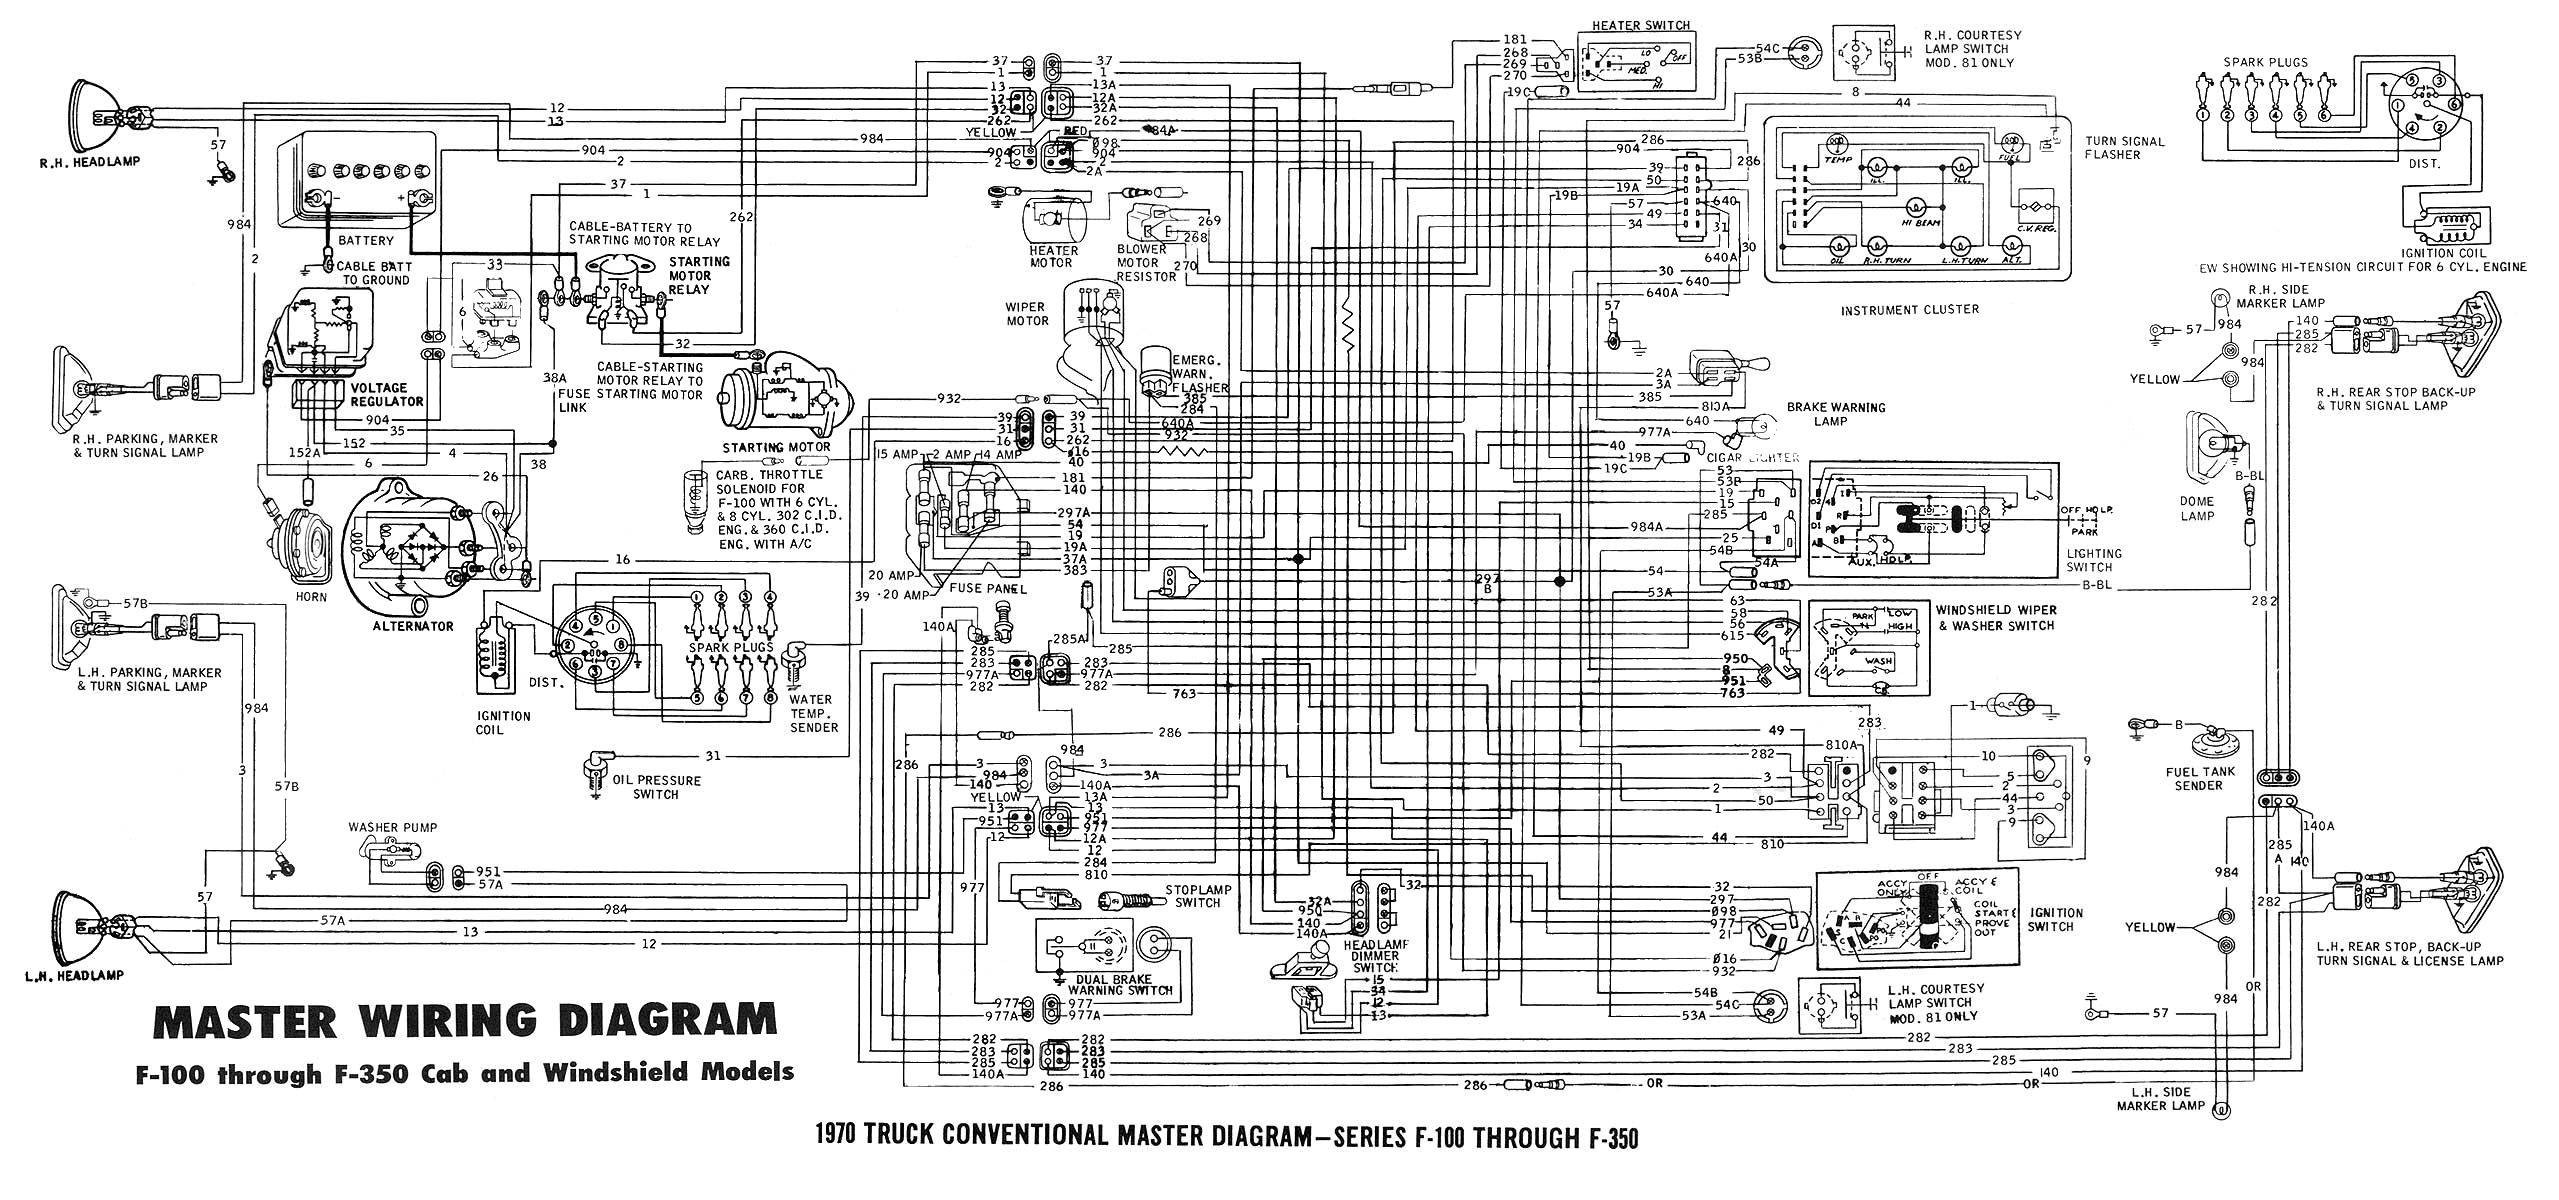 Ford 7 3 Diesel Engine Diagram 2 F250 Sel 7 3 Fuse Box Diagram Free Download Wiring Diagram Schematic Of Ford 7 3 Diesel Engine Diagram 2